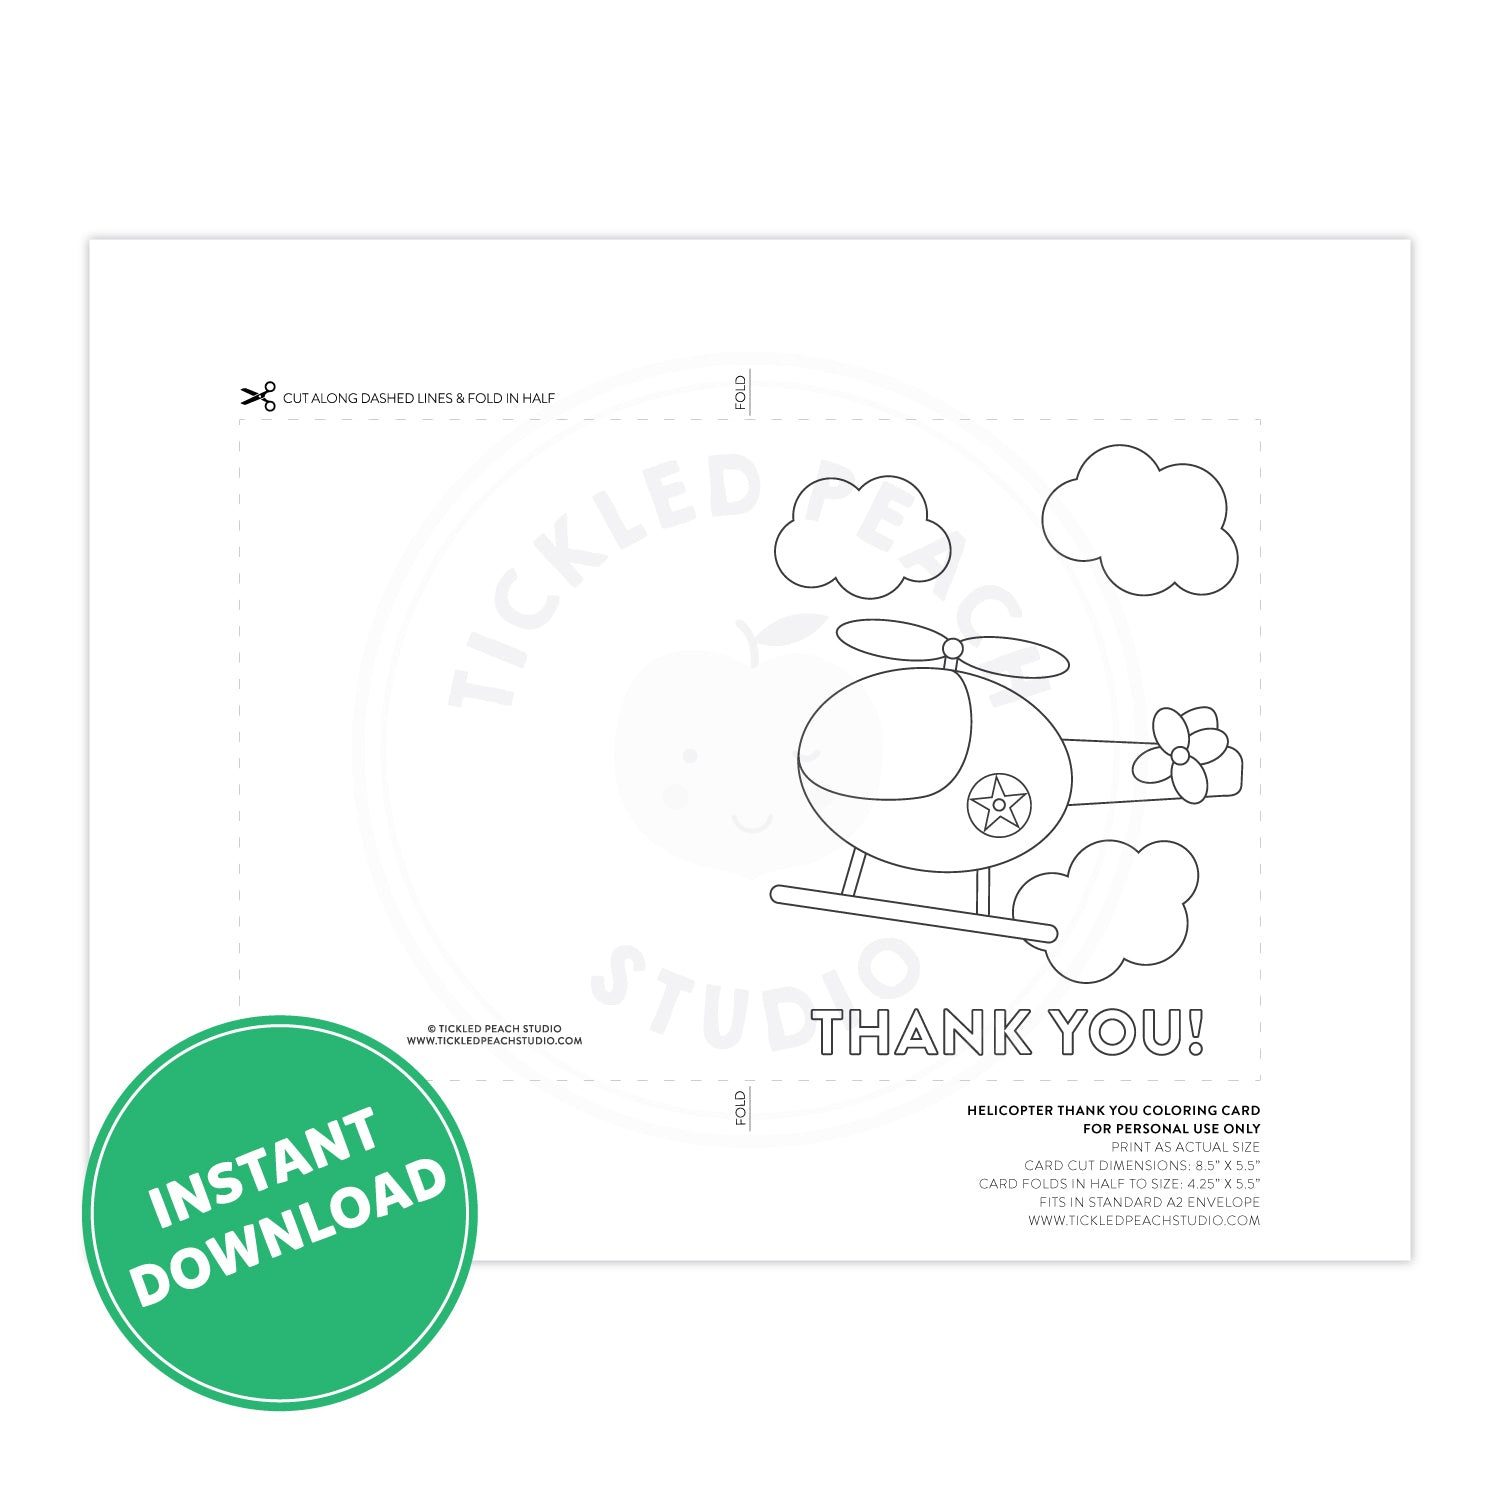 PRINTABLE Helicopter Thank You Coloring Card